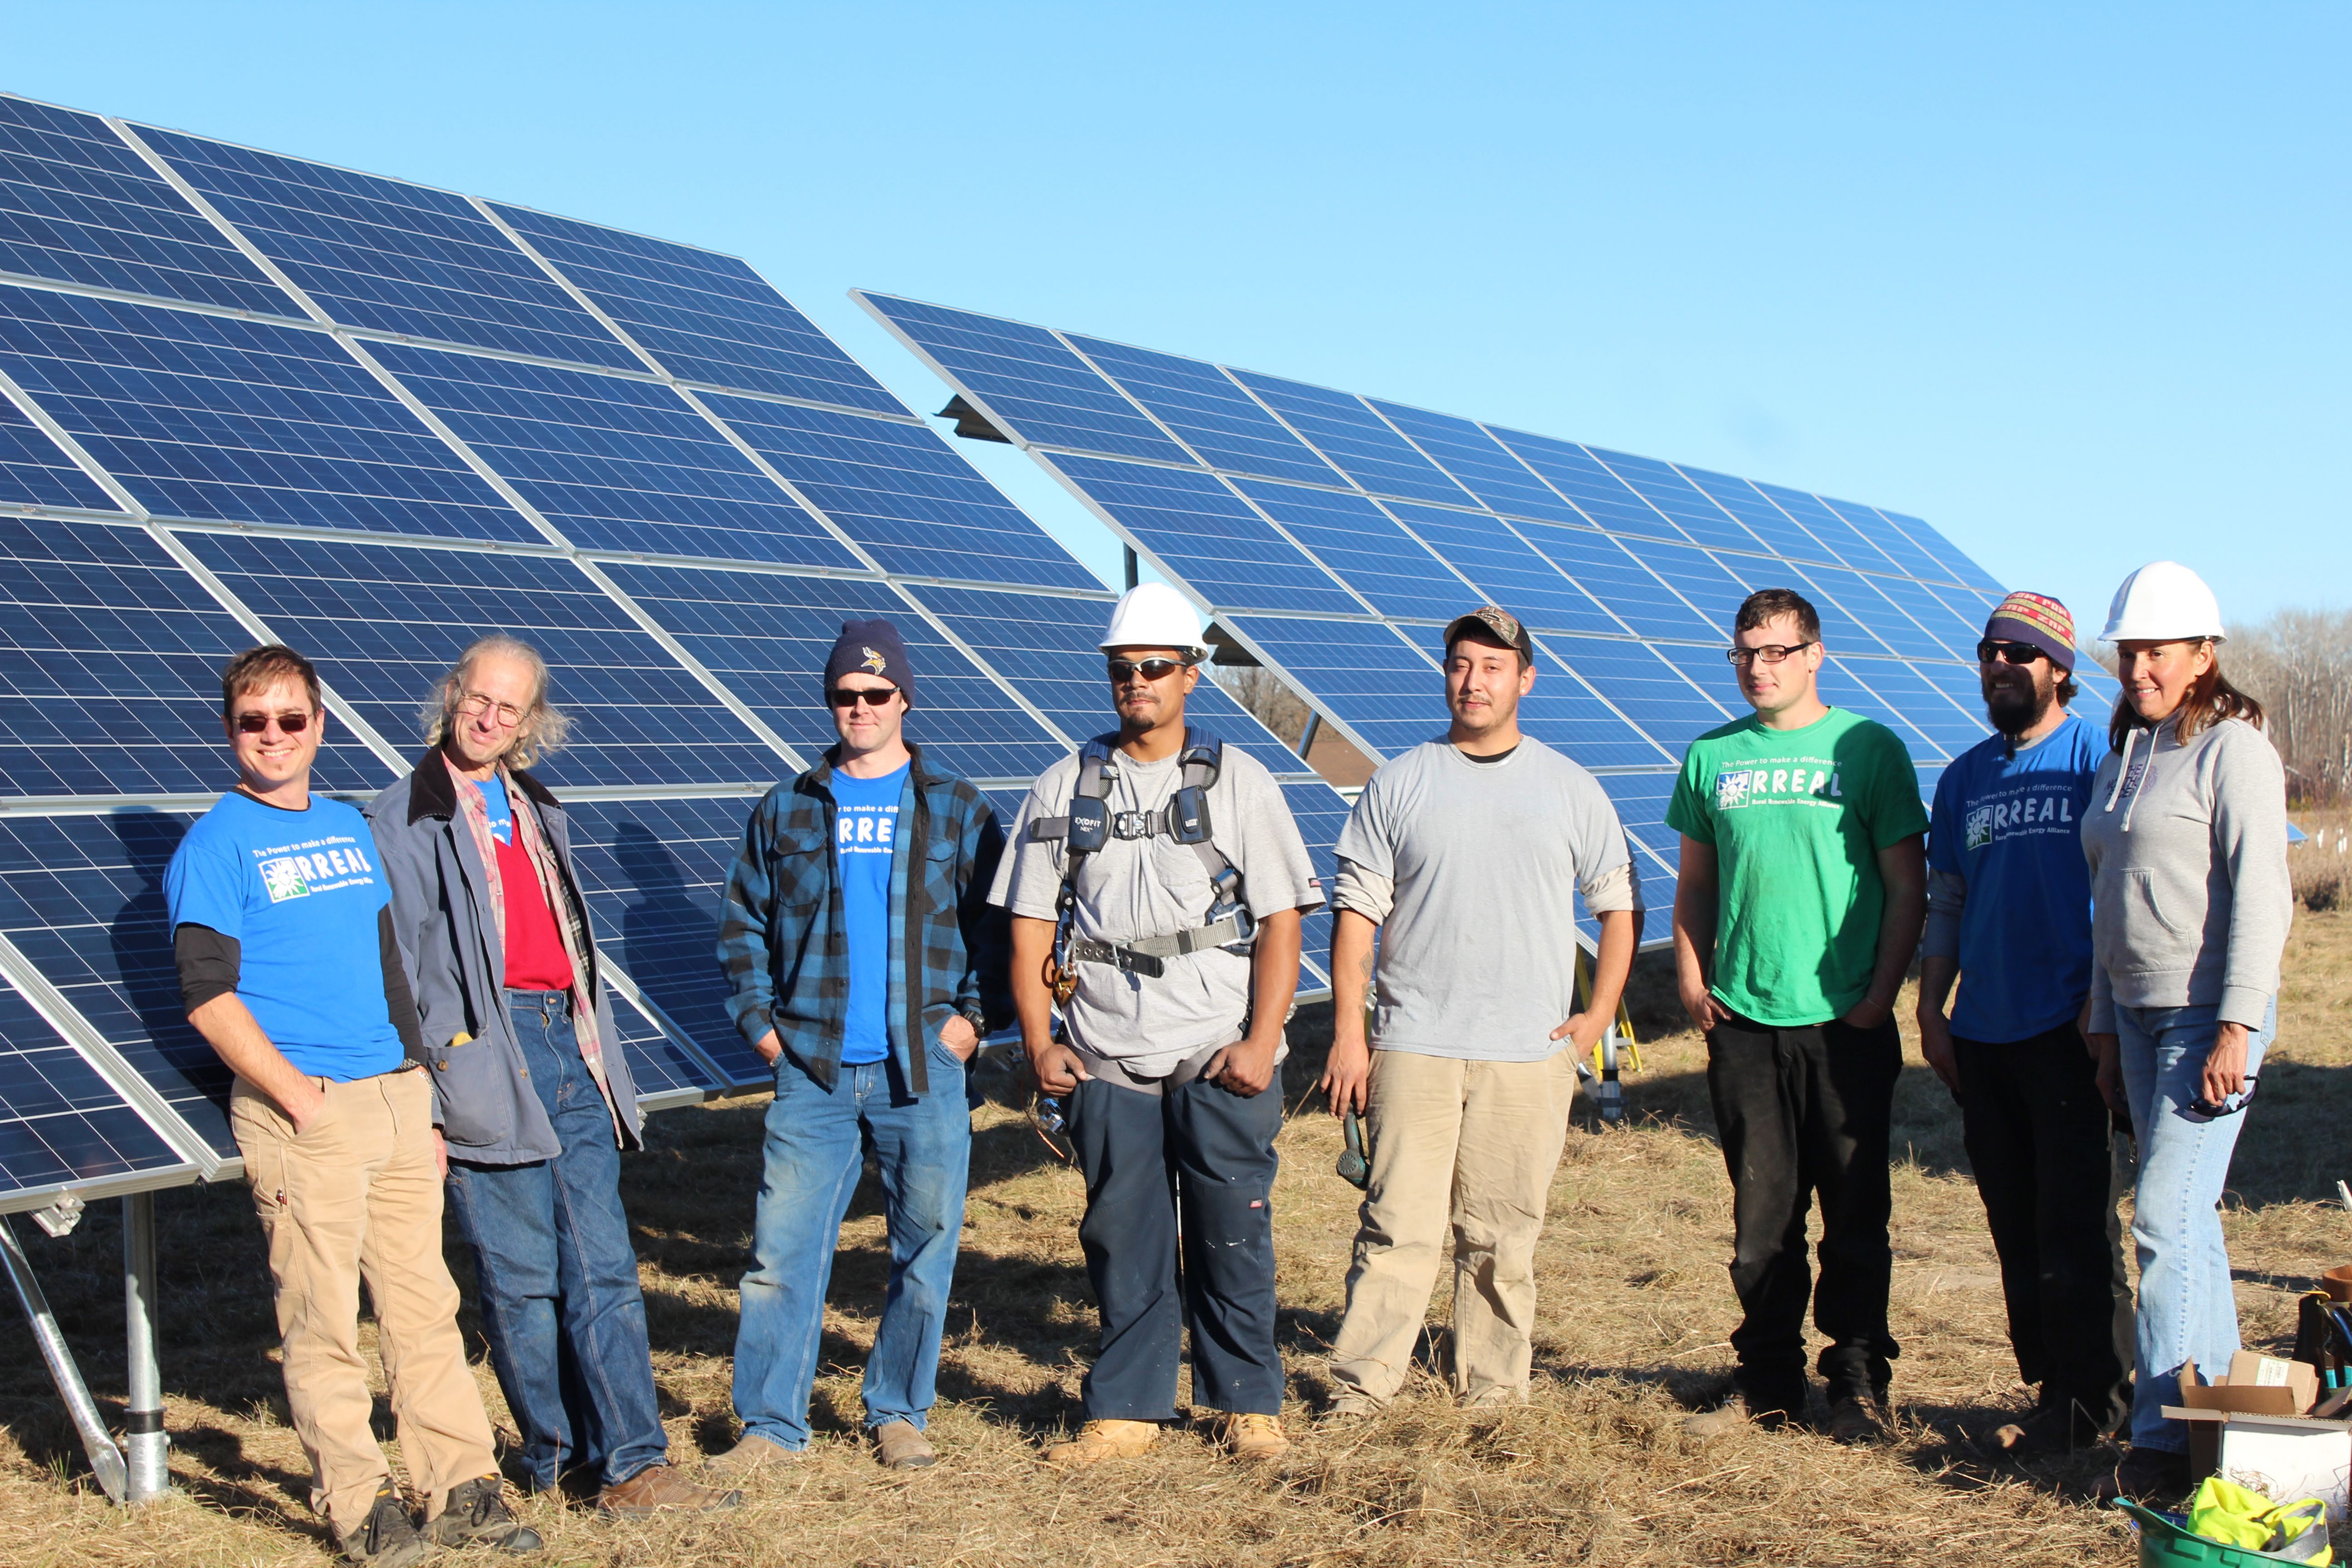 RREAL Installs Solar for Leech Lake Band of Ojibwe Native American Tribe